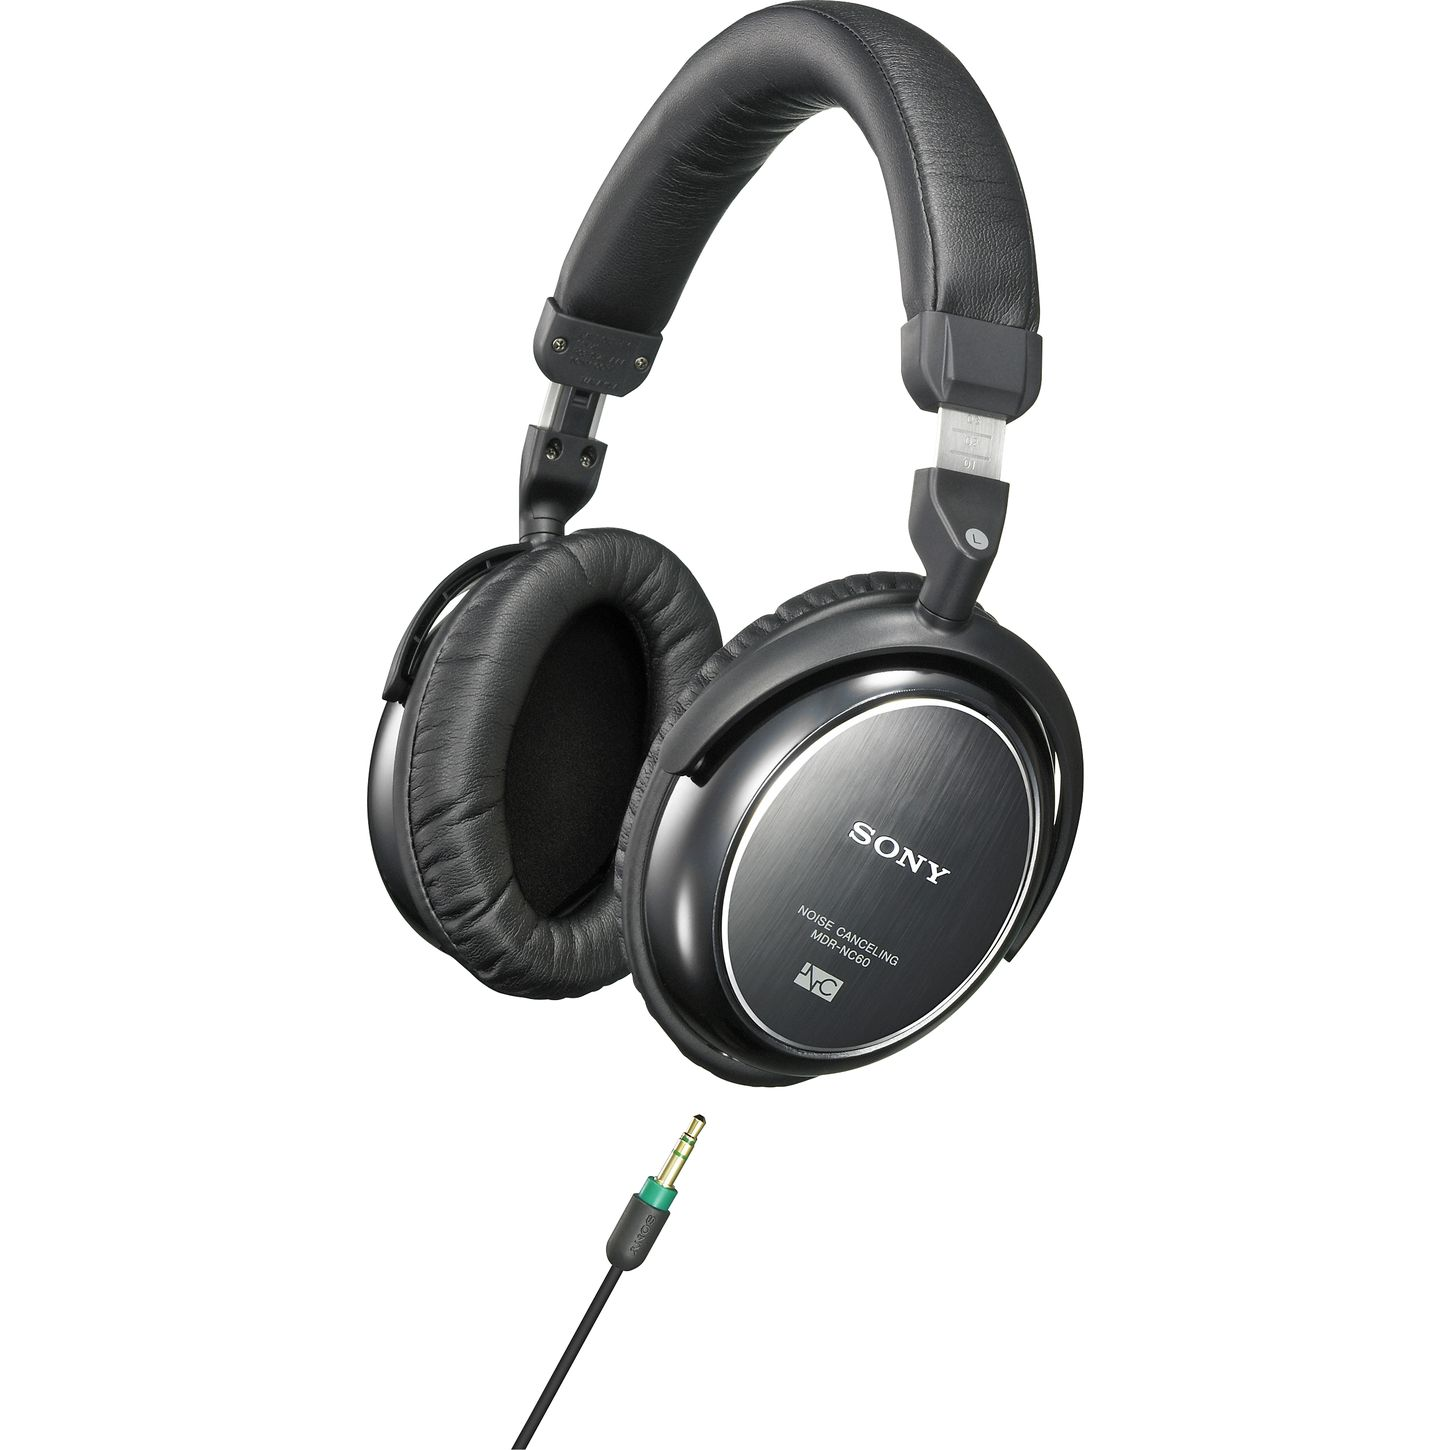 sony mdr nc60 affordable noise canceling headphones musician 39 s friend. Black Bedroom Furniture Sets. Home Design Ideas